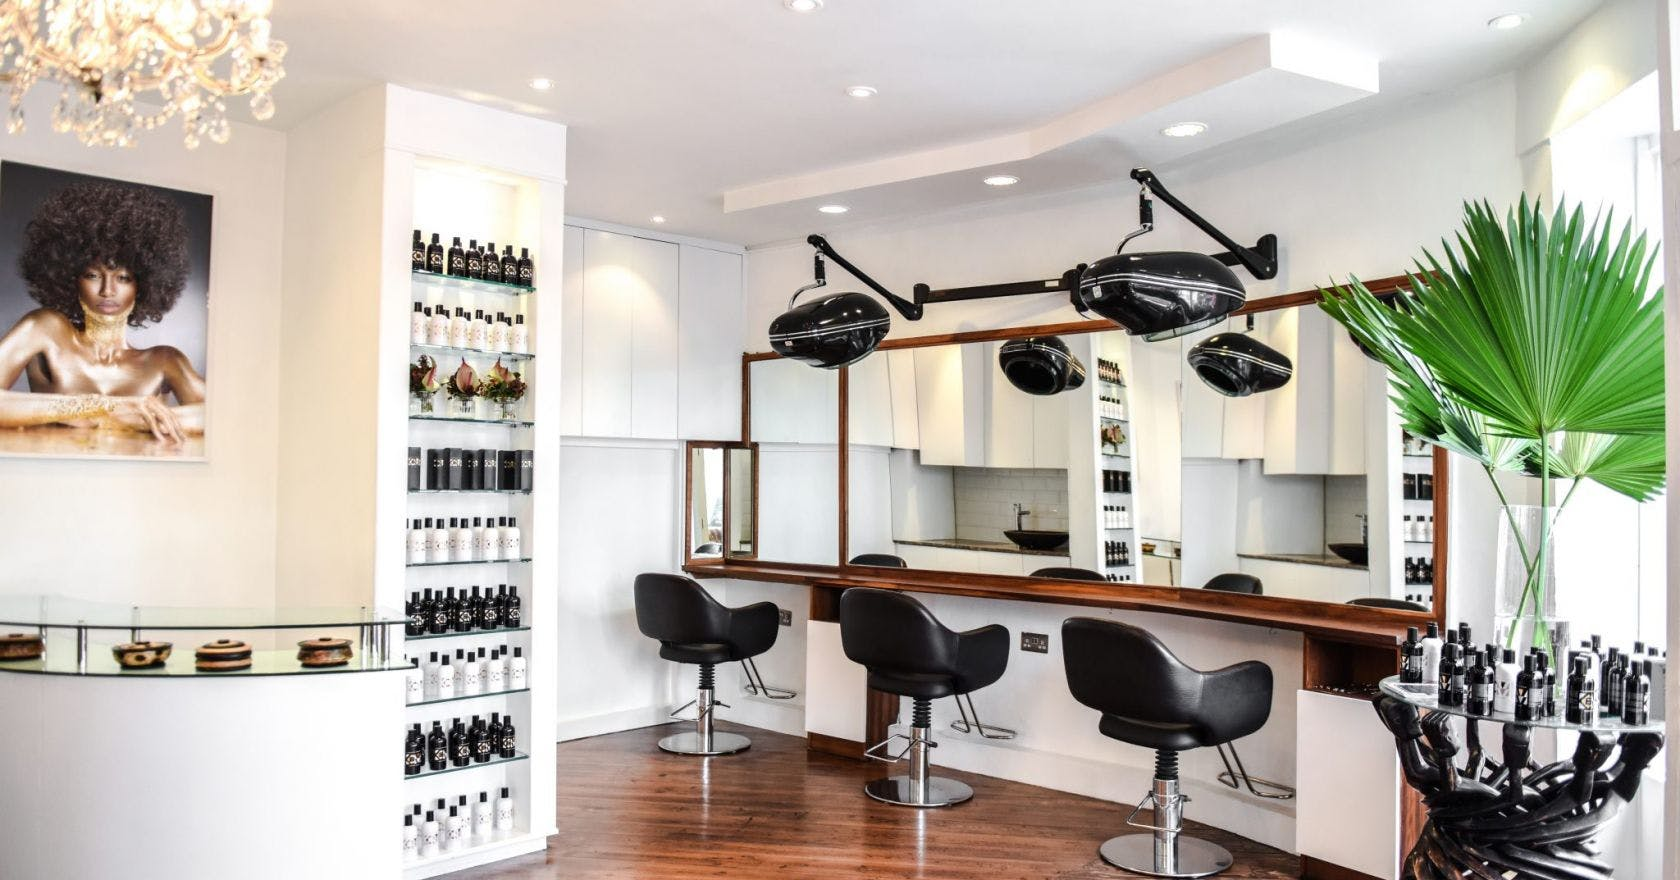 The Best Afro And Black Hair Salons In The Uk